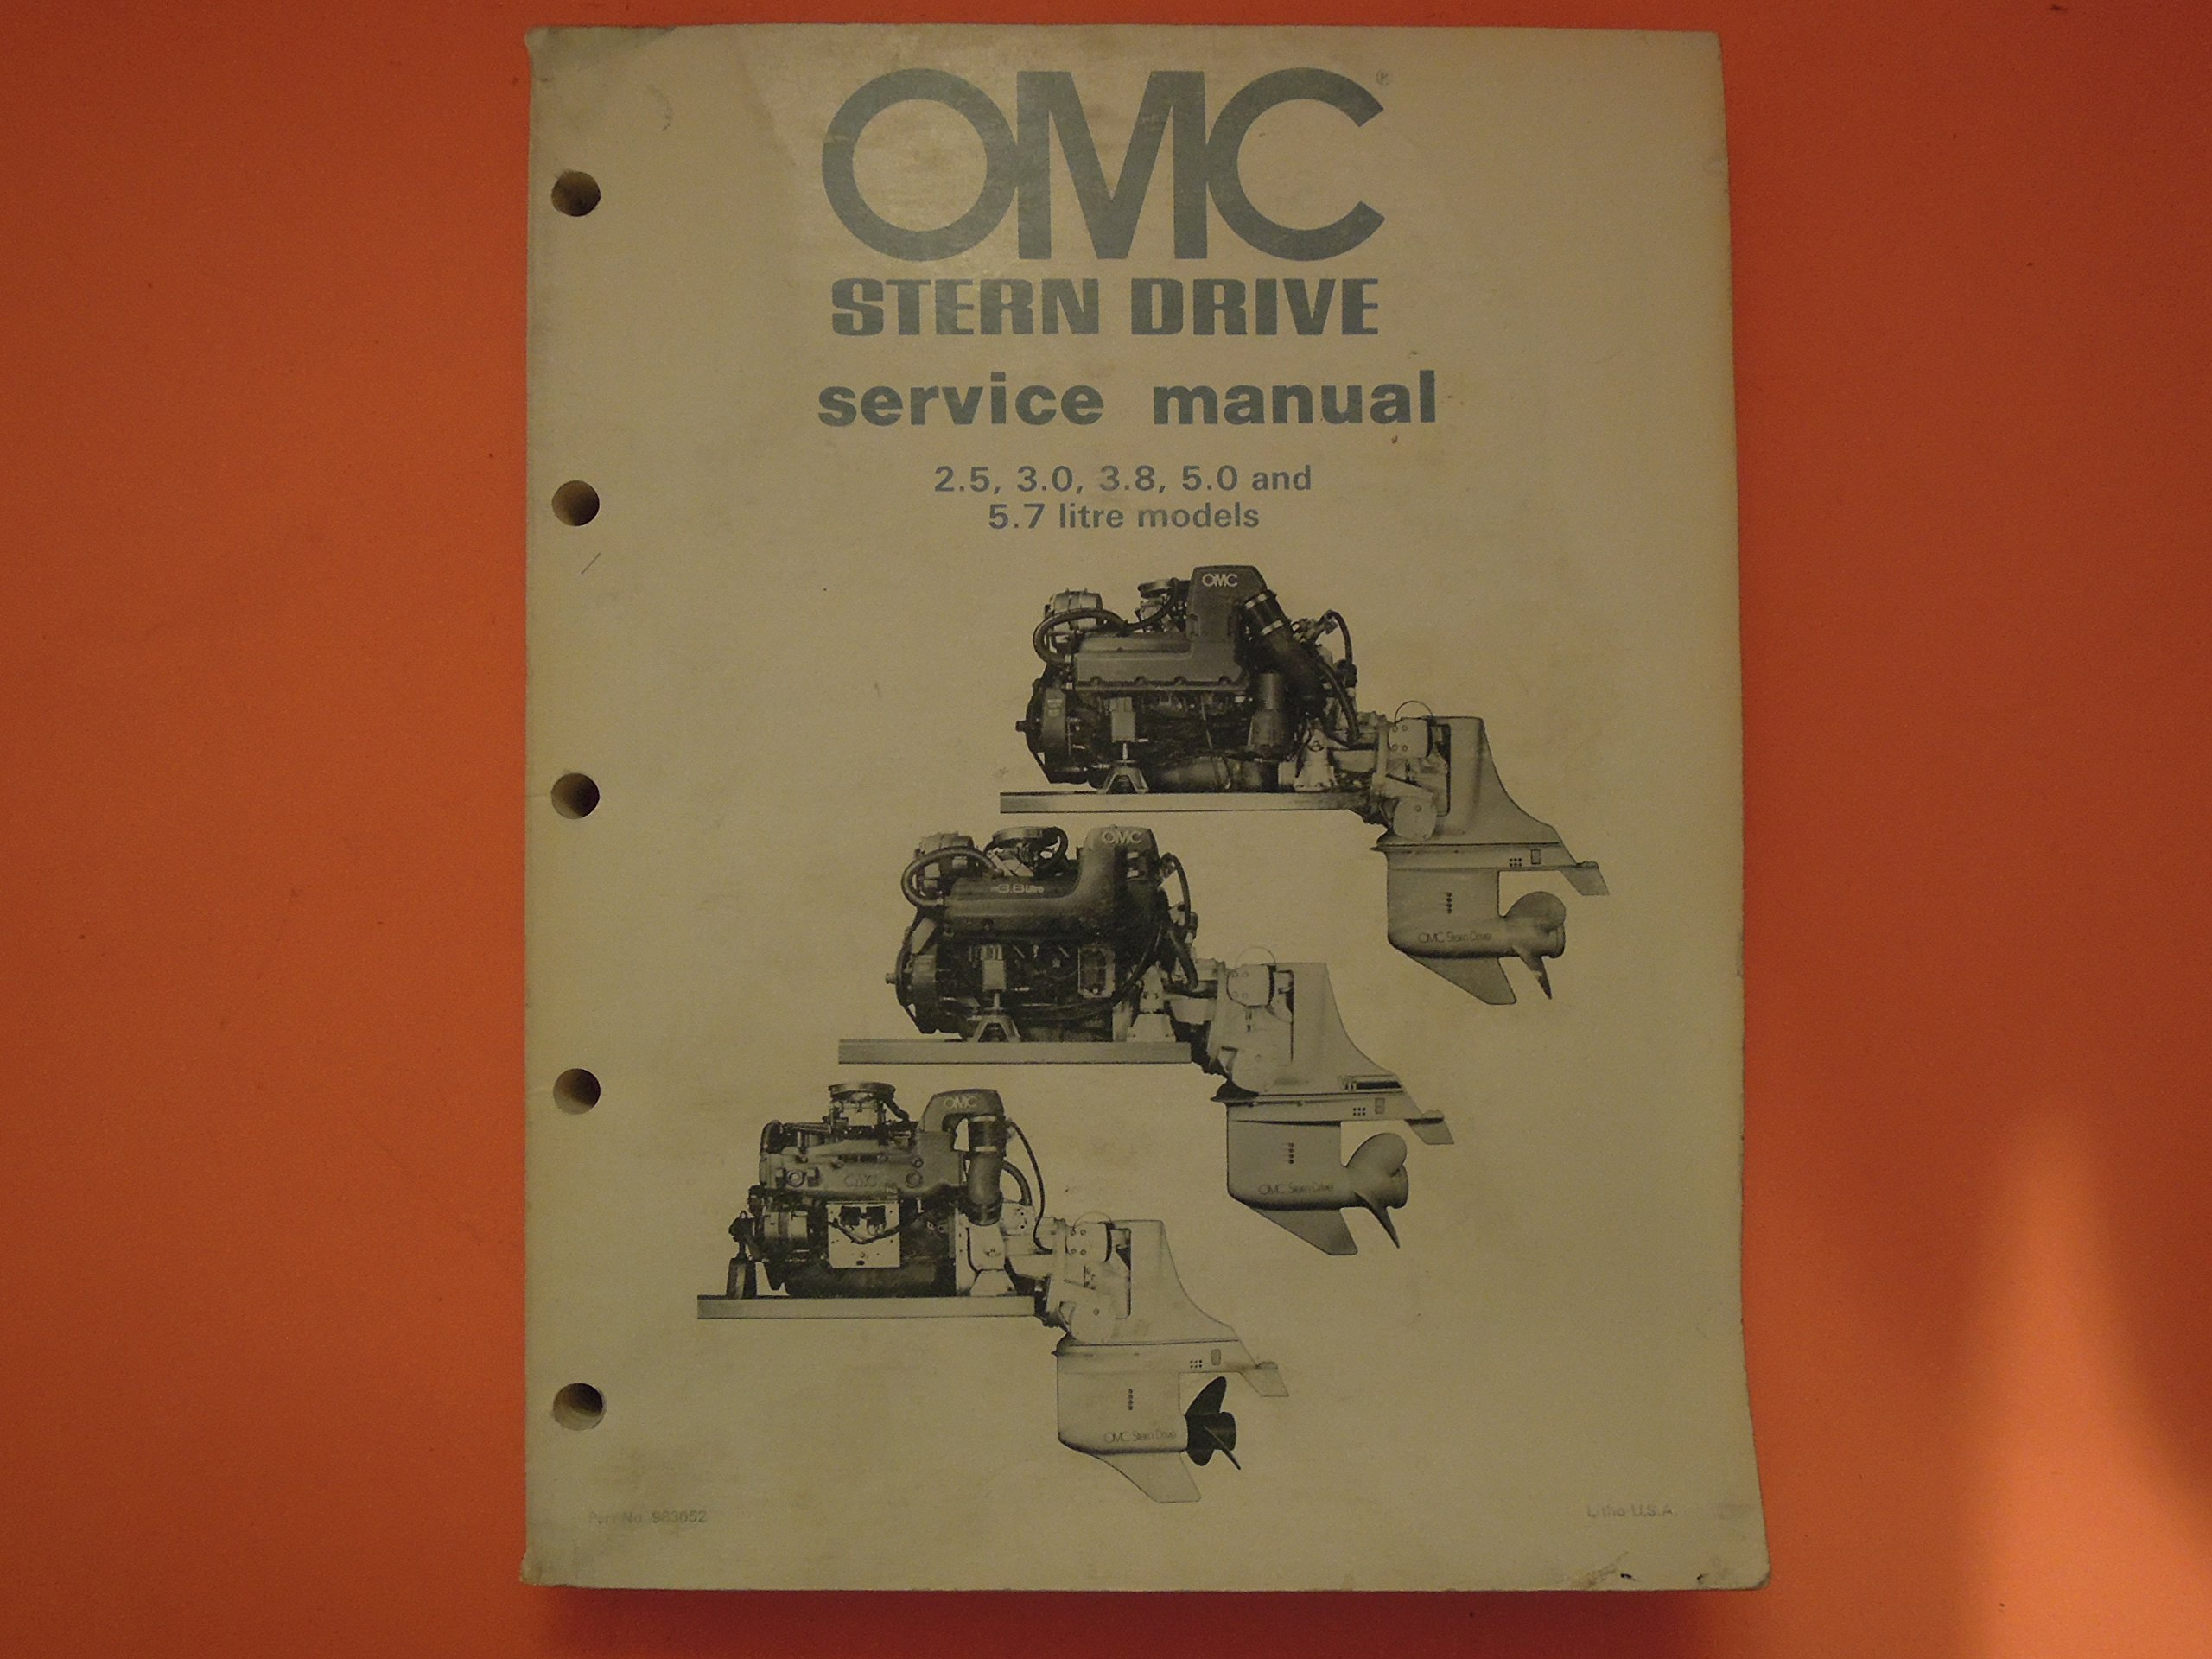 OMC Stern Drive Service Manual (2.5, 3.0, 3.8, 5.0 and 5.7 litre models):  Outboard Marine Corporation: Amazon.com: Books